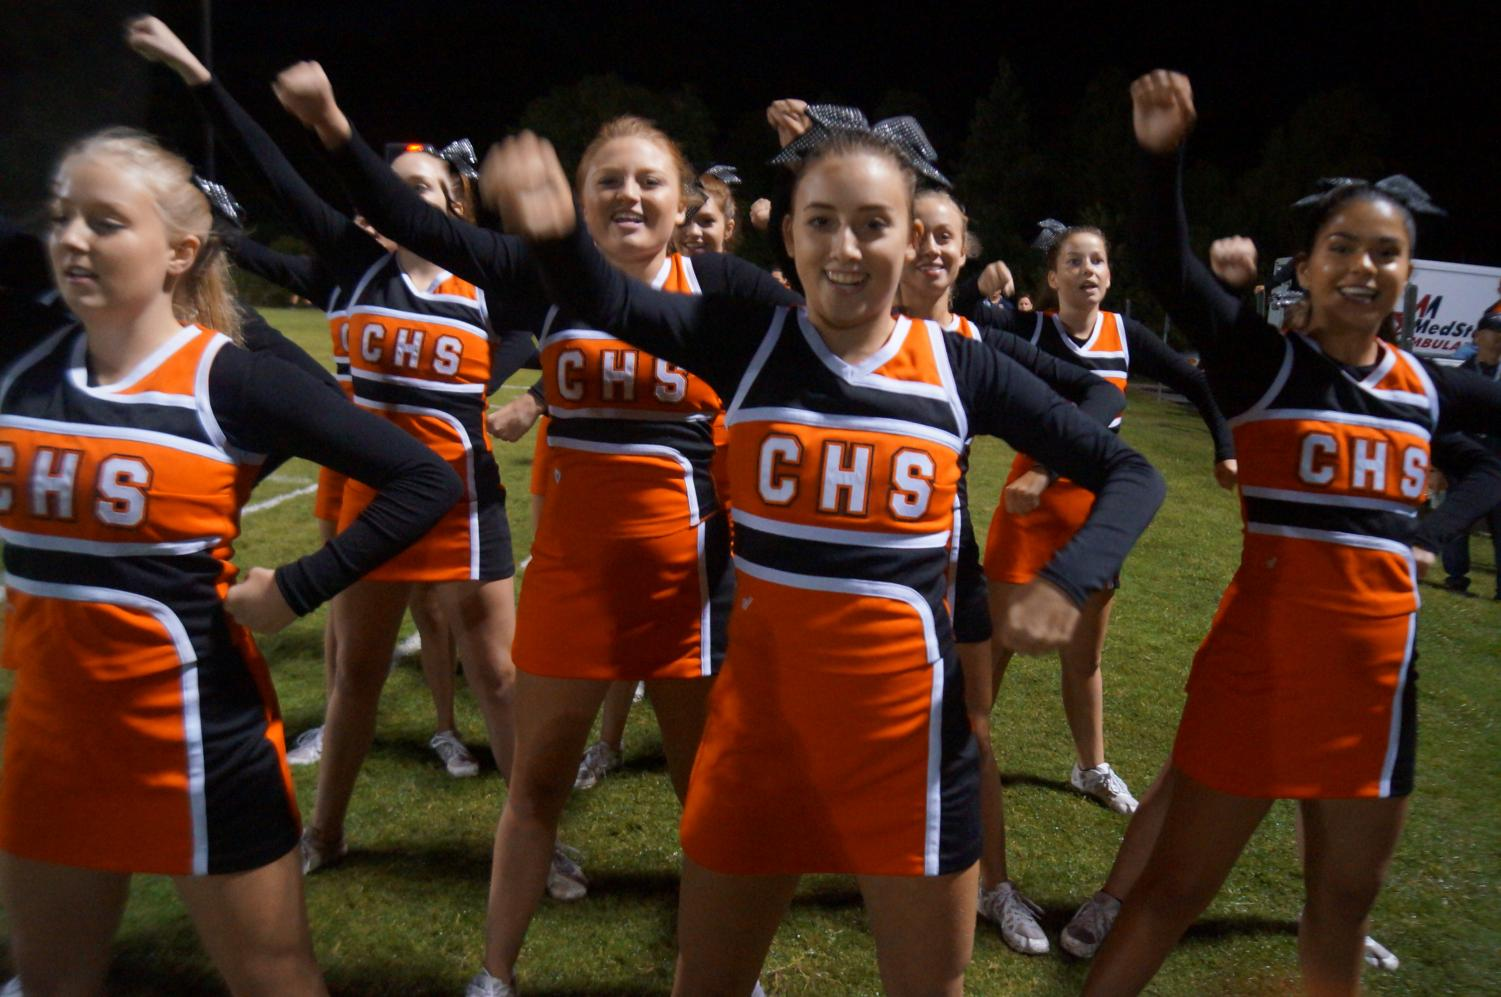 CHS cheerleaders fire up the crowd at the football game against Fairfield.